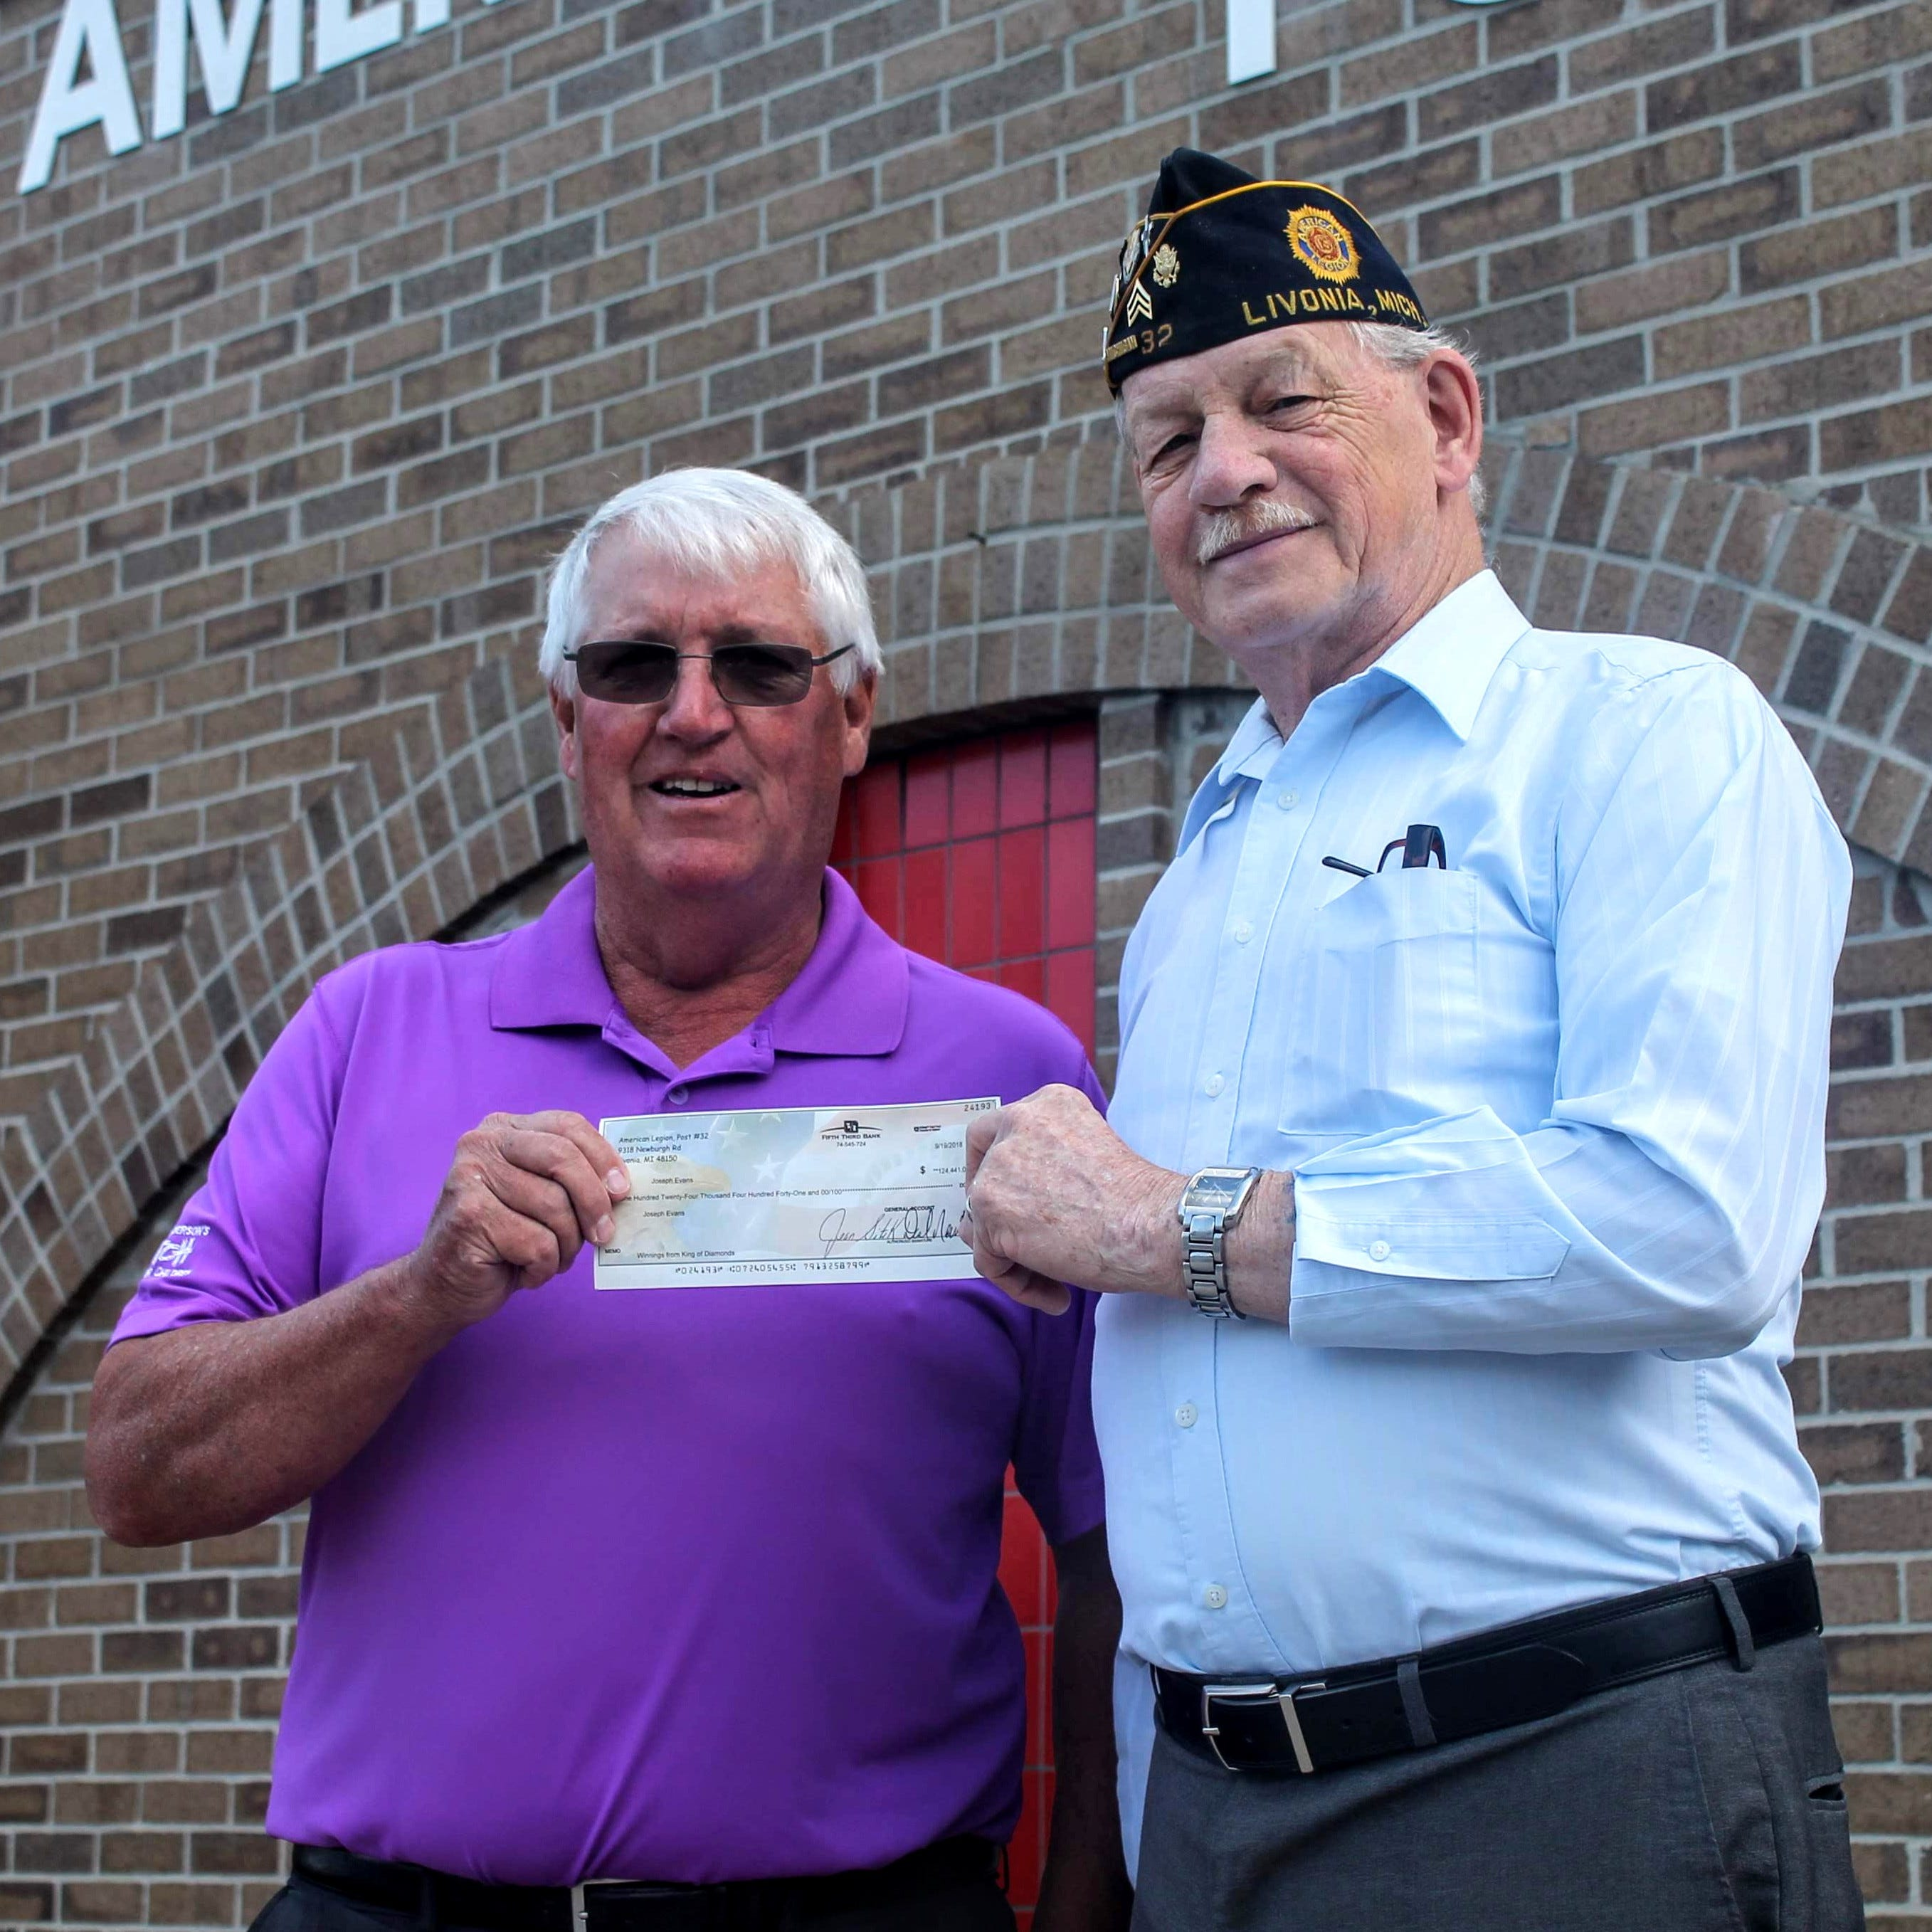 King of the draw: Northville man takes home $124K in Livonia American Legion Post lottery